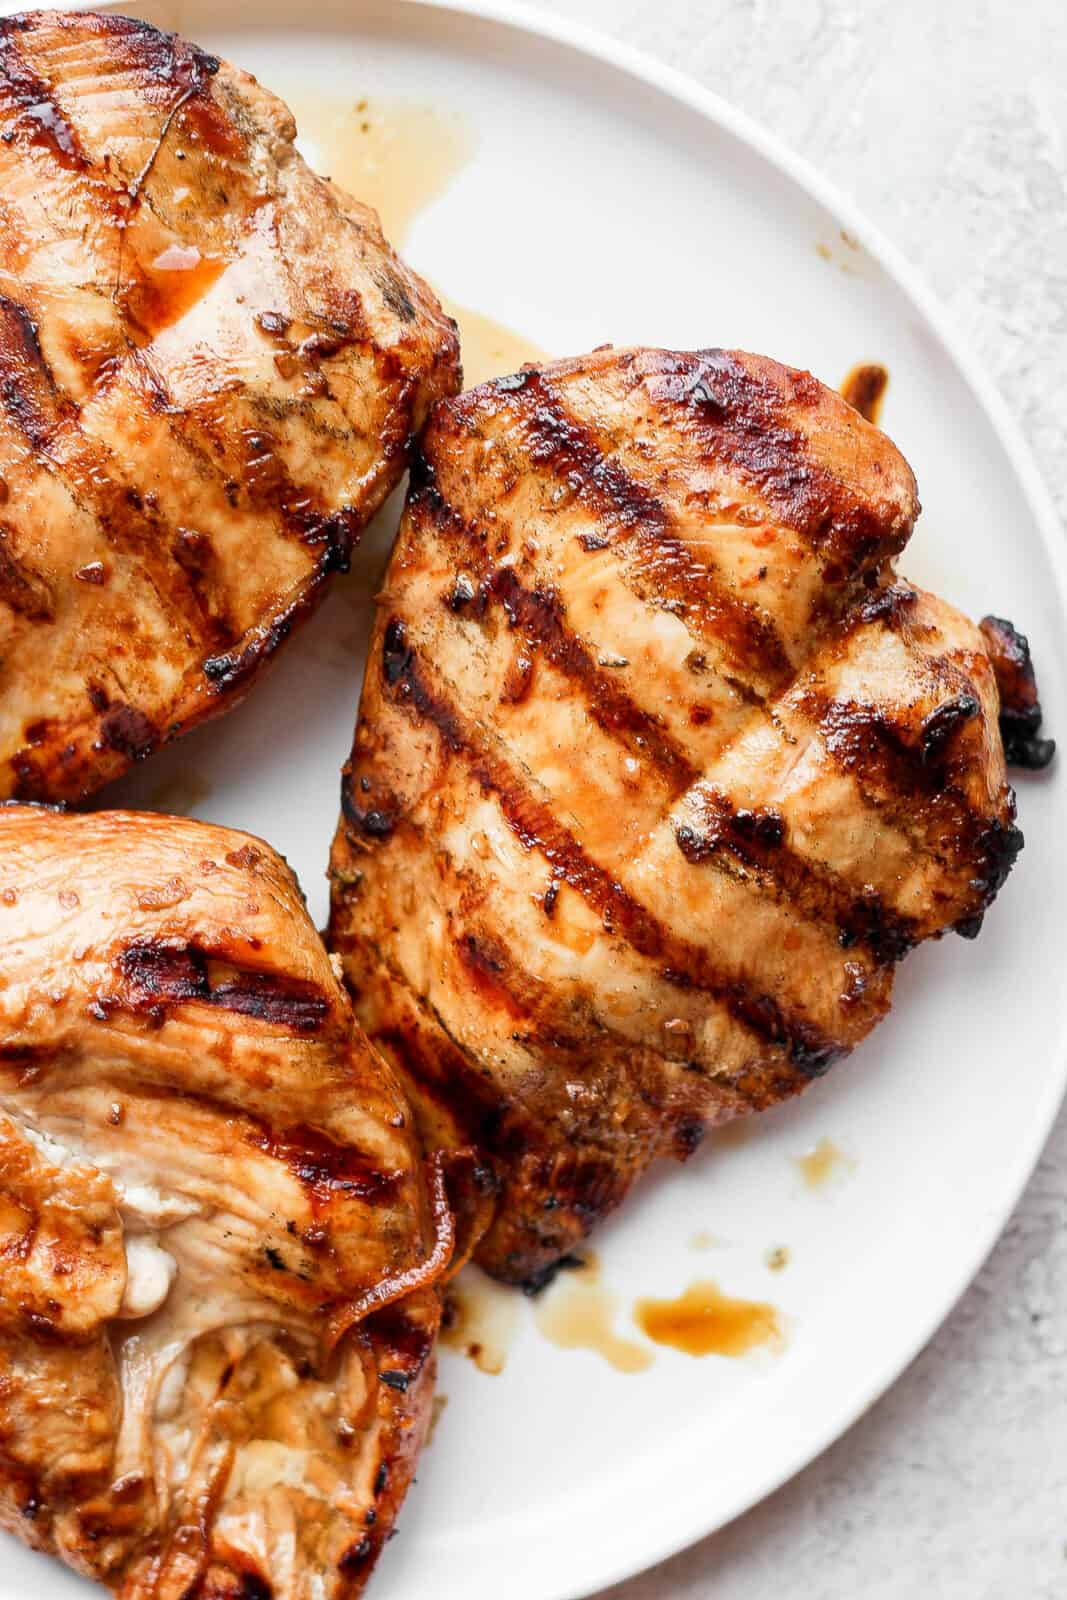 Grilled chicken breasts on a plate.